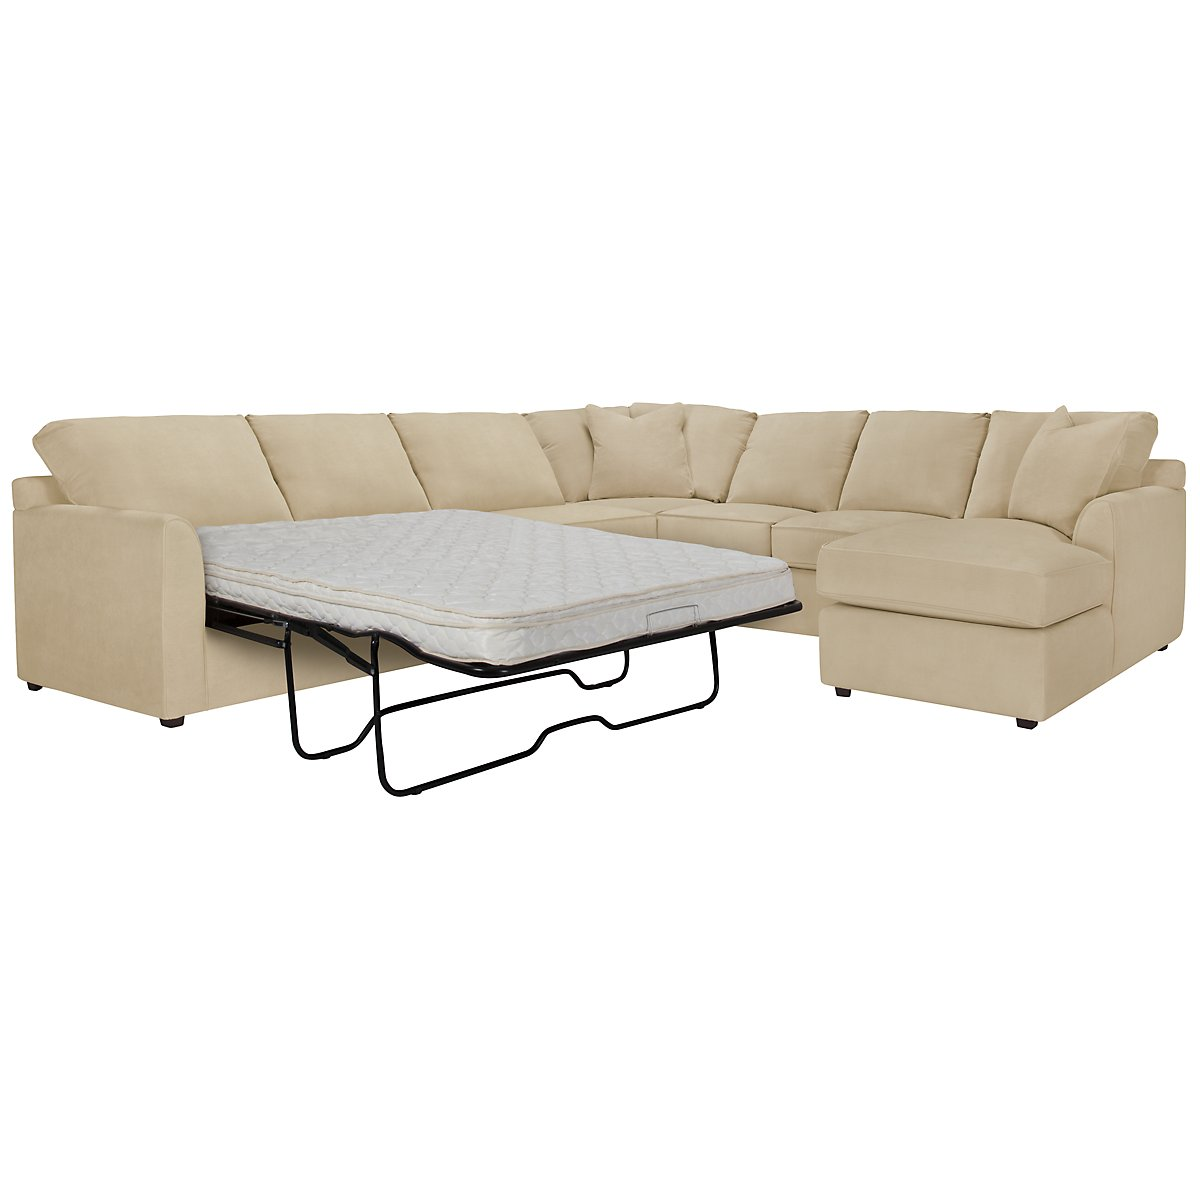 Express3 Lt Beige Microfiber Right Chaise Innerspring Sleeper Sectional